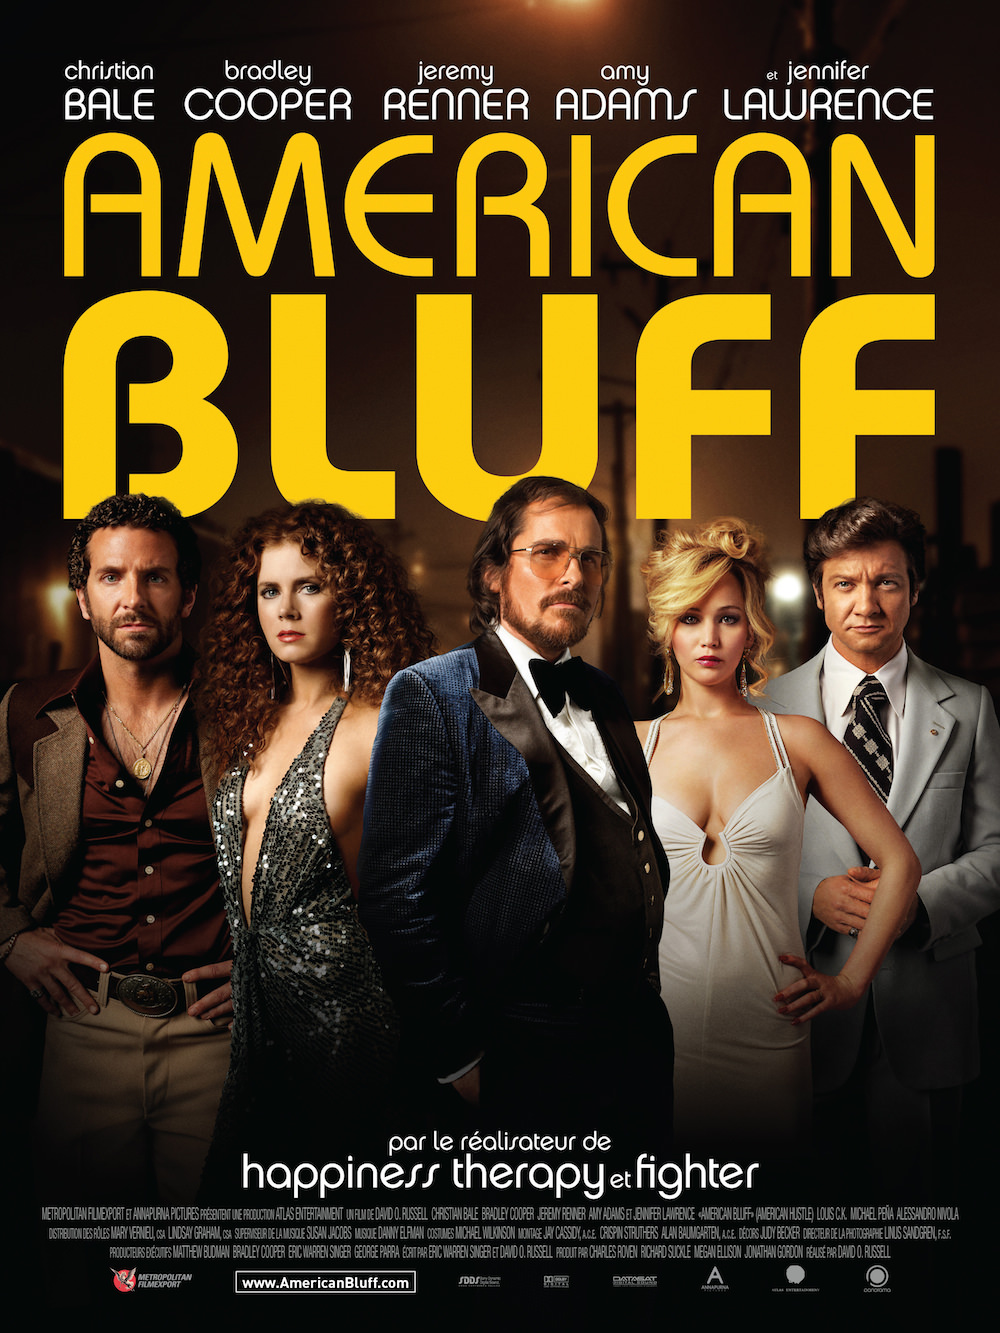 American bluff russell